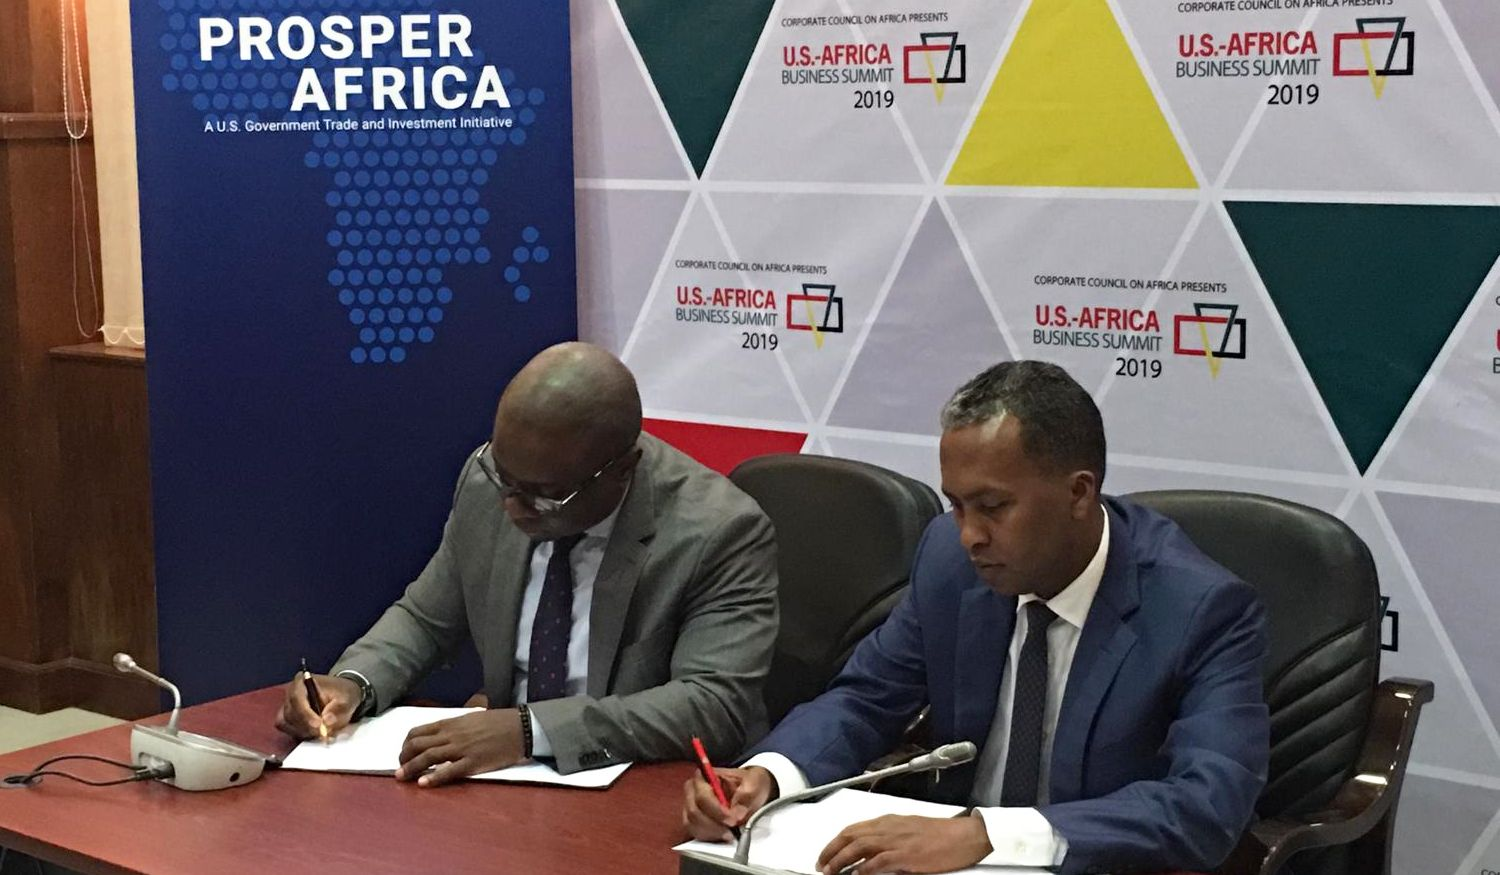 AGCO Africa and AT Capital bosses signing MoU